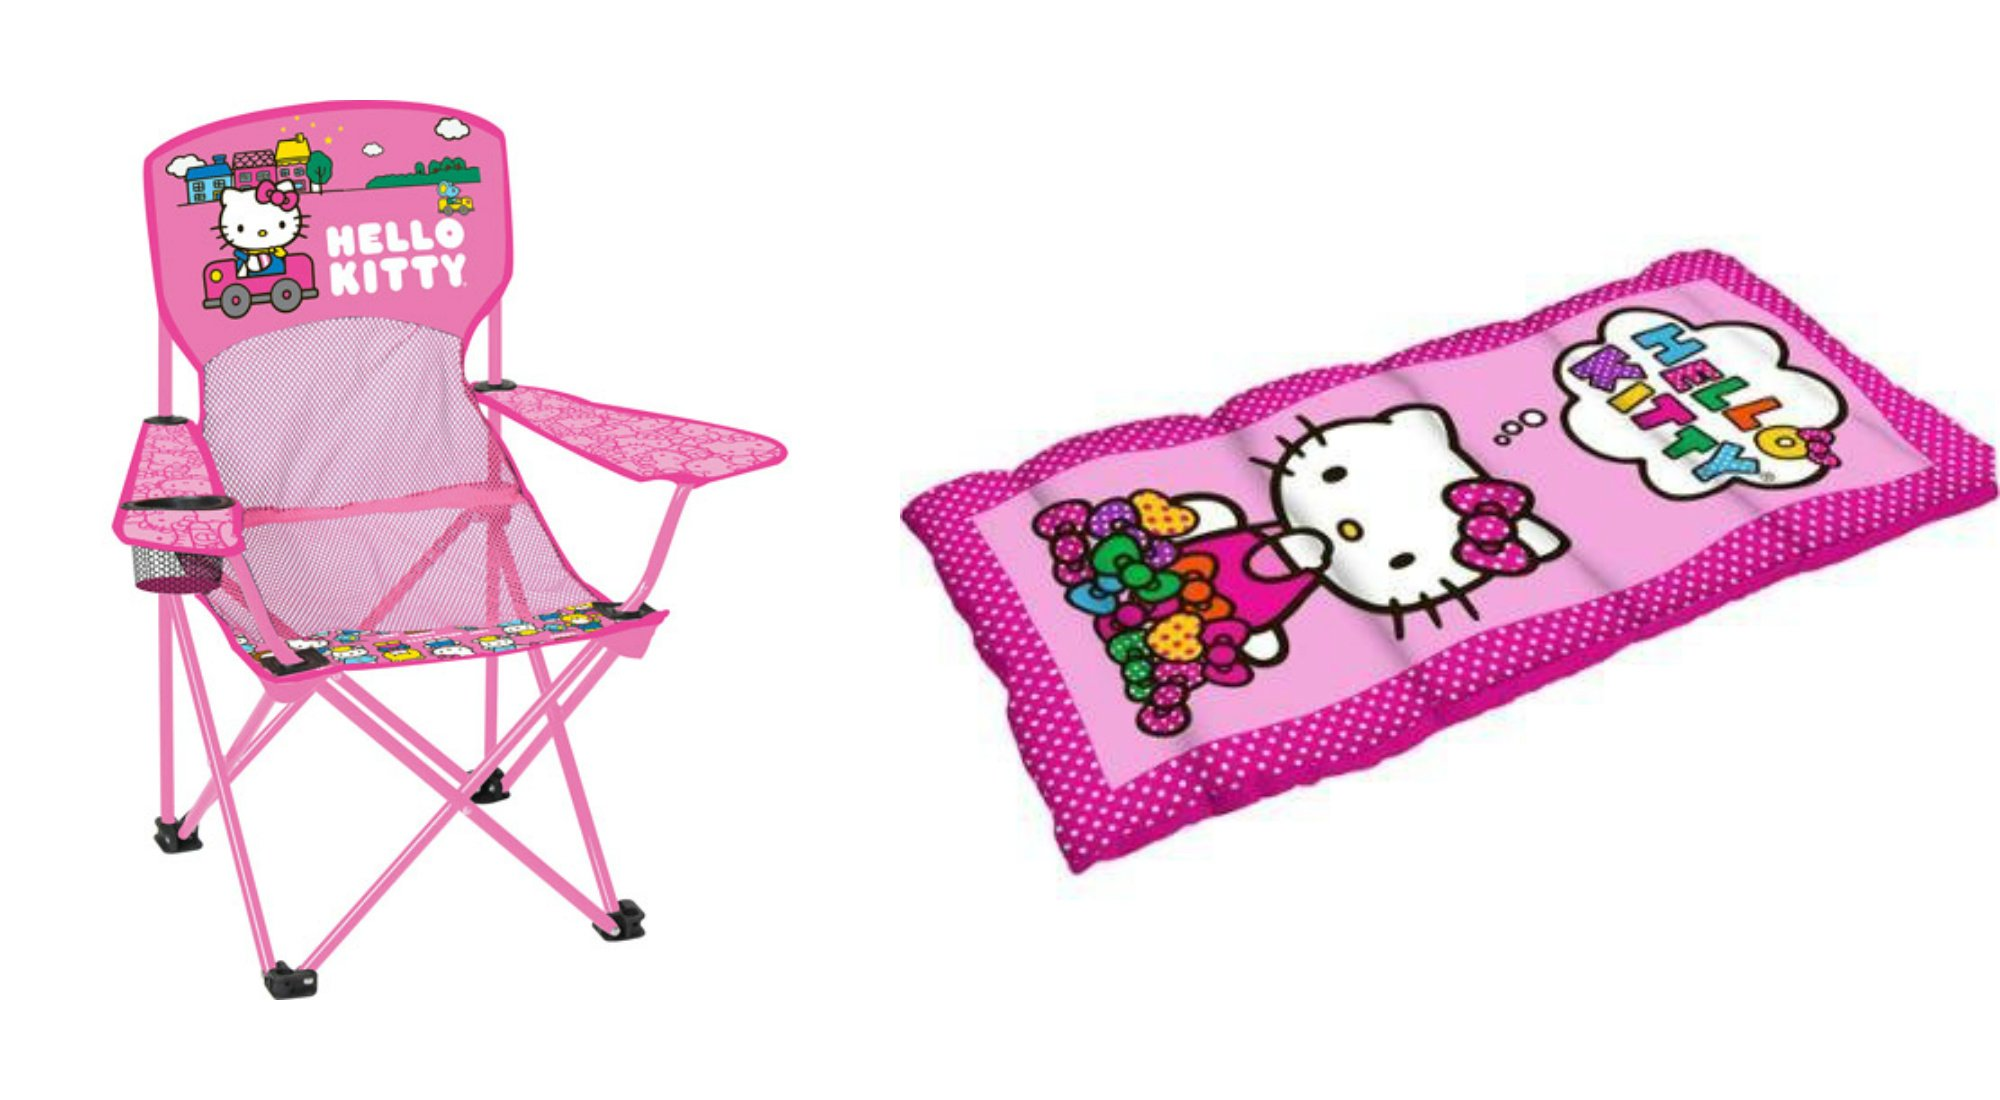 Hello Kitty Sleeping Bag and Chair 2 Piece Camping Set